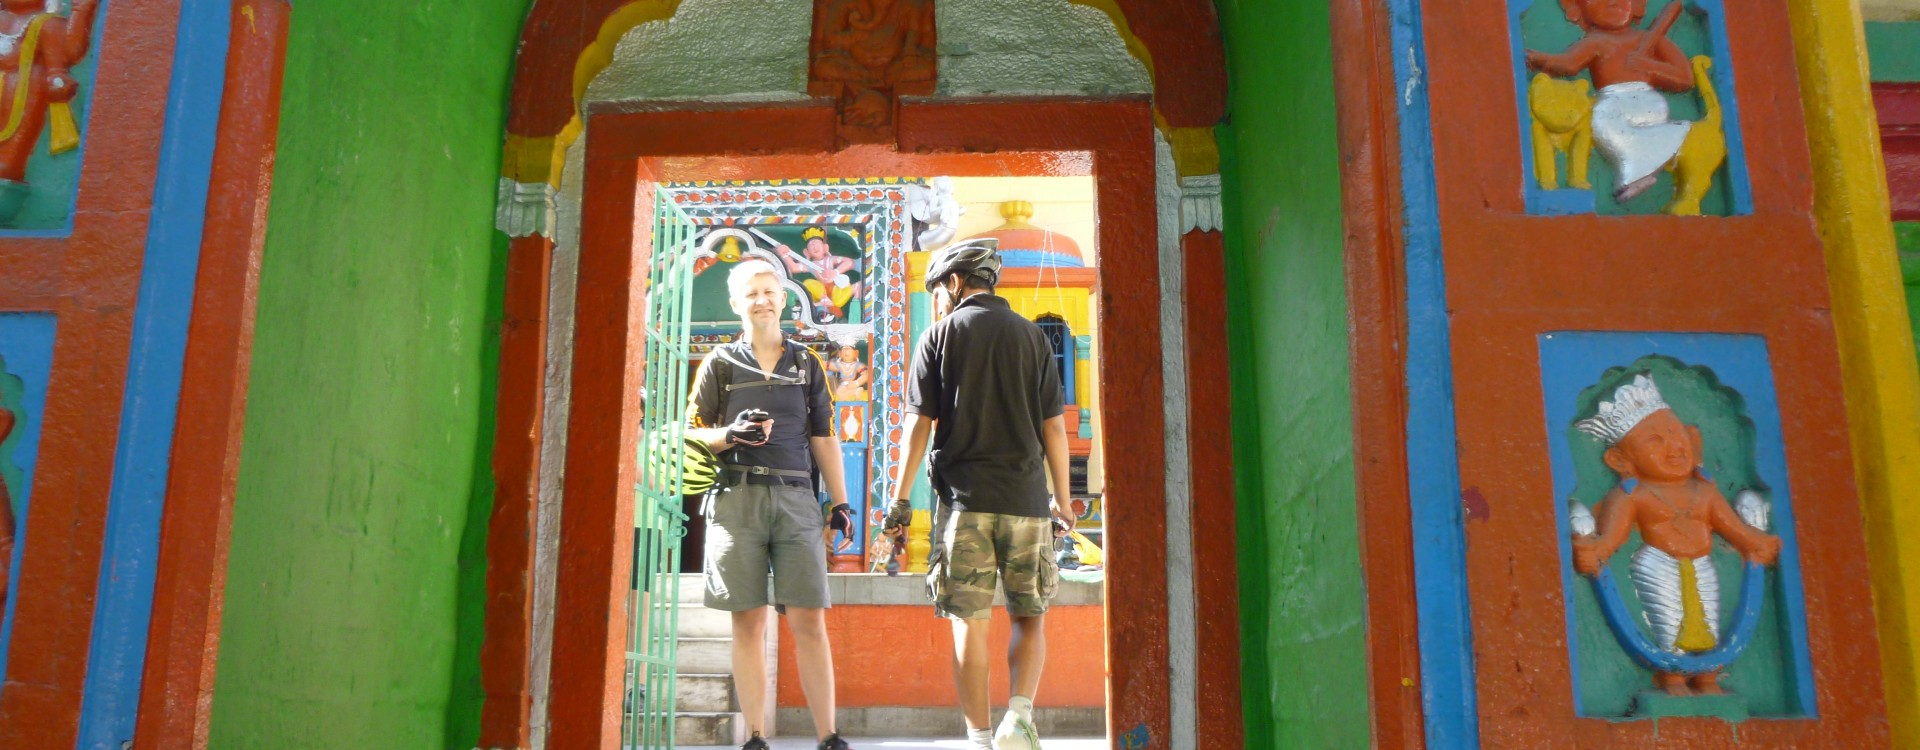 Temple visit on the Himalayan Hill-Stations ride